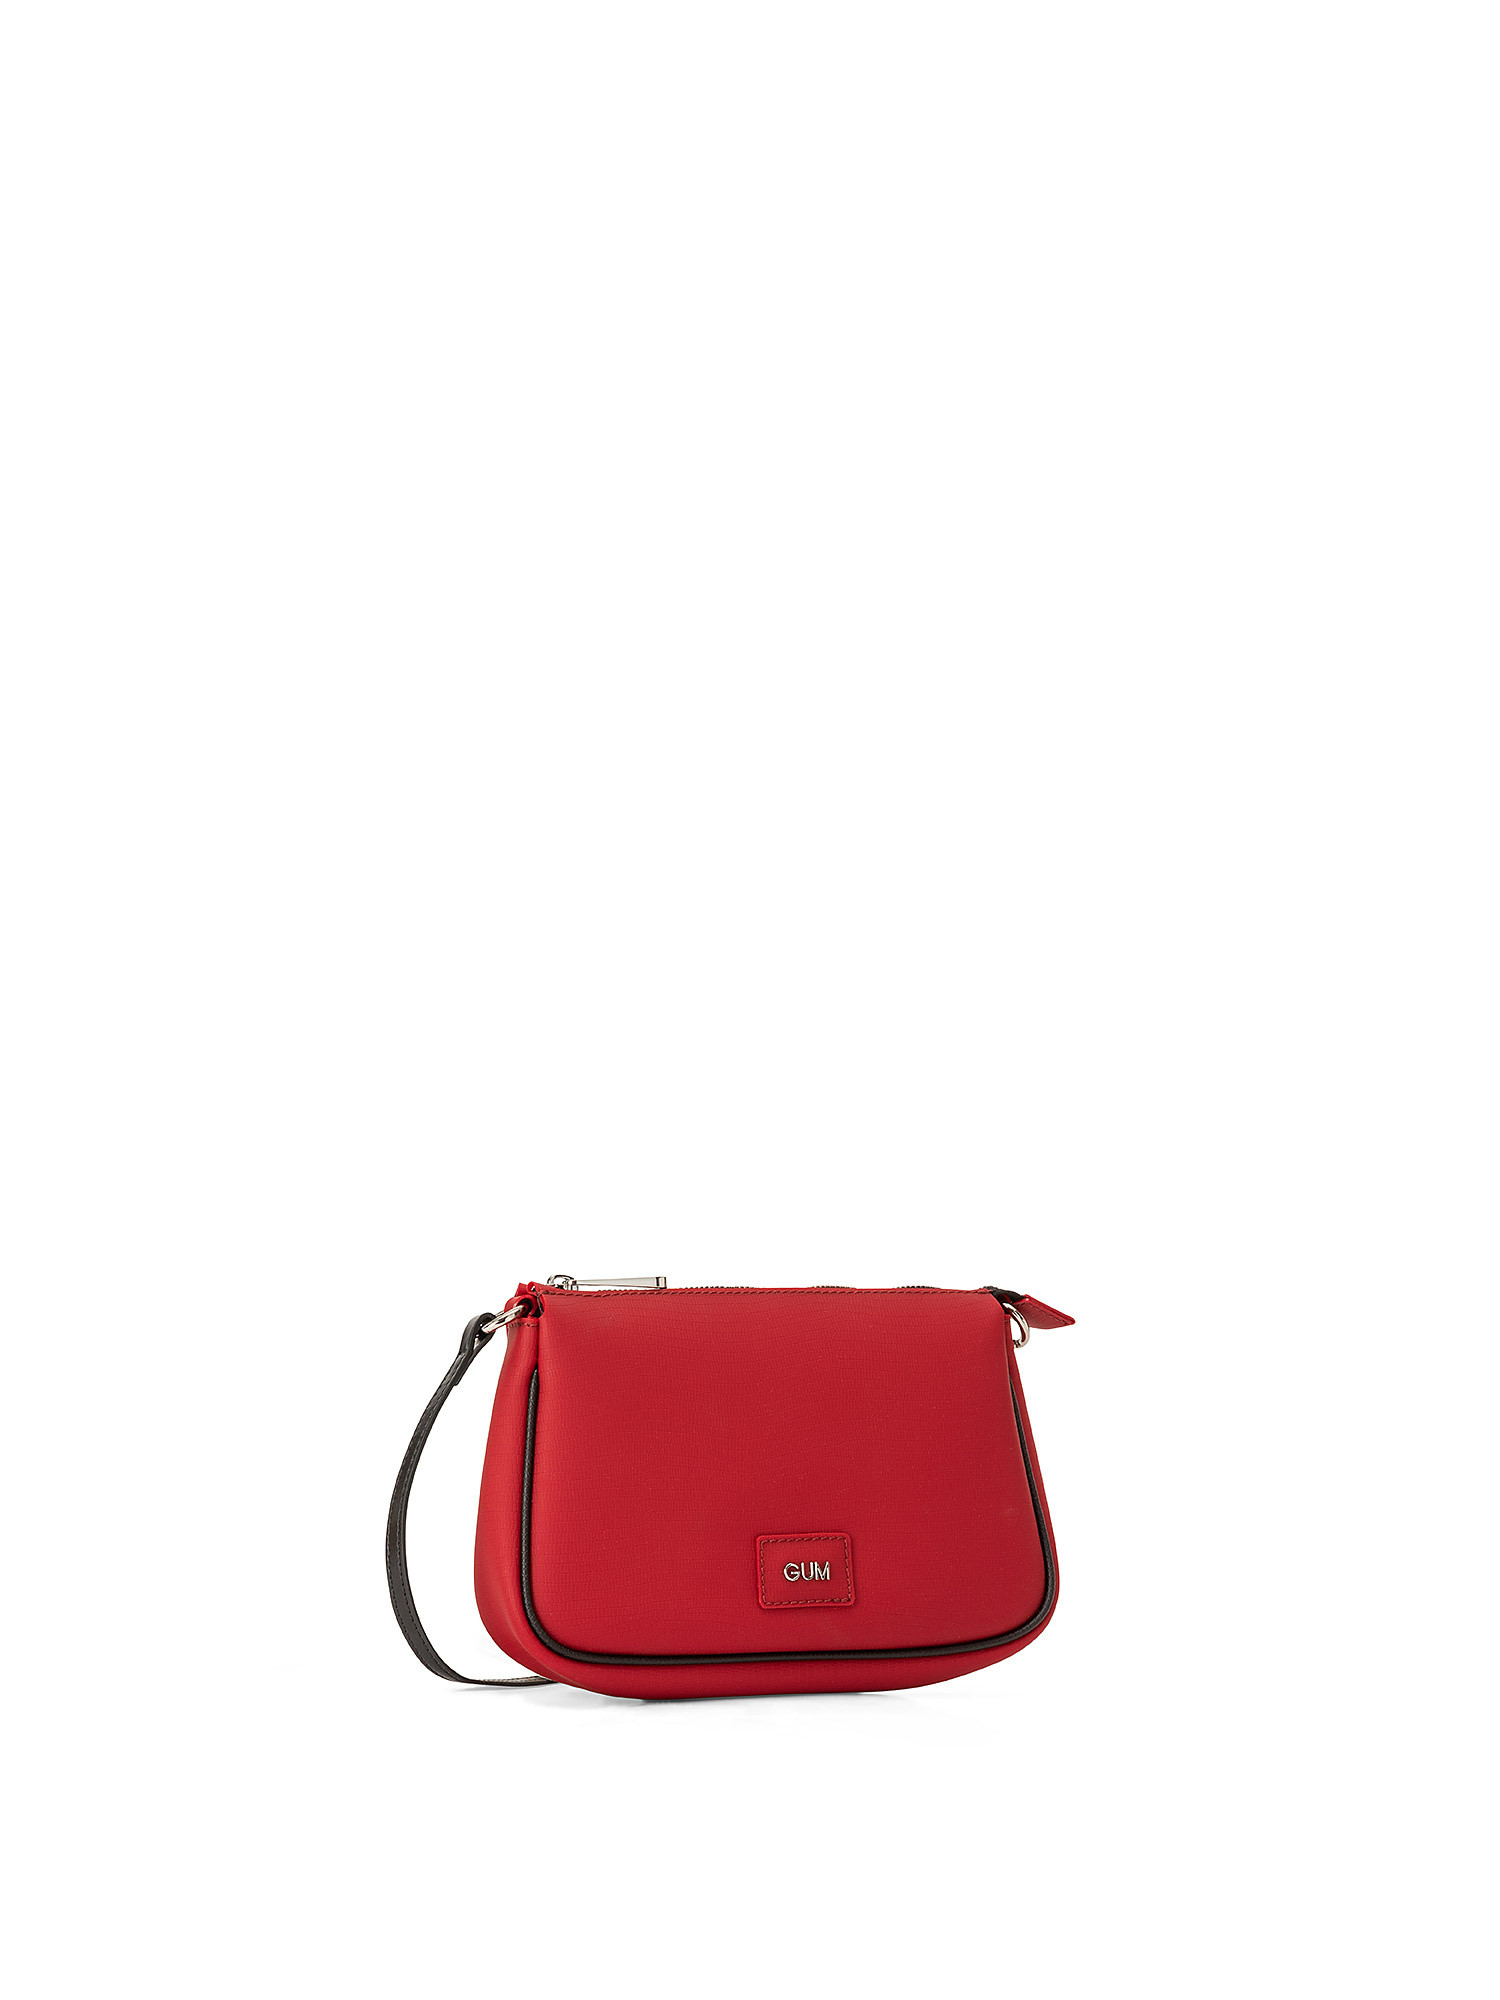 Borsa a mano Dizzy, Rosso, large image number 1